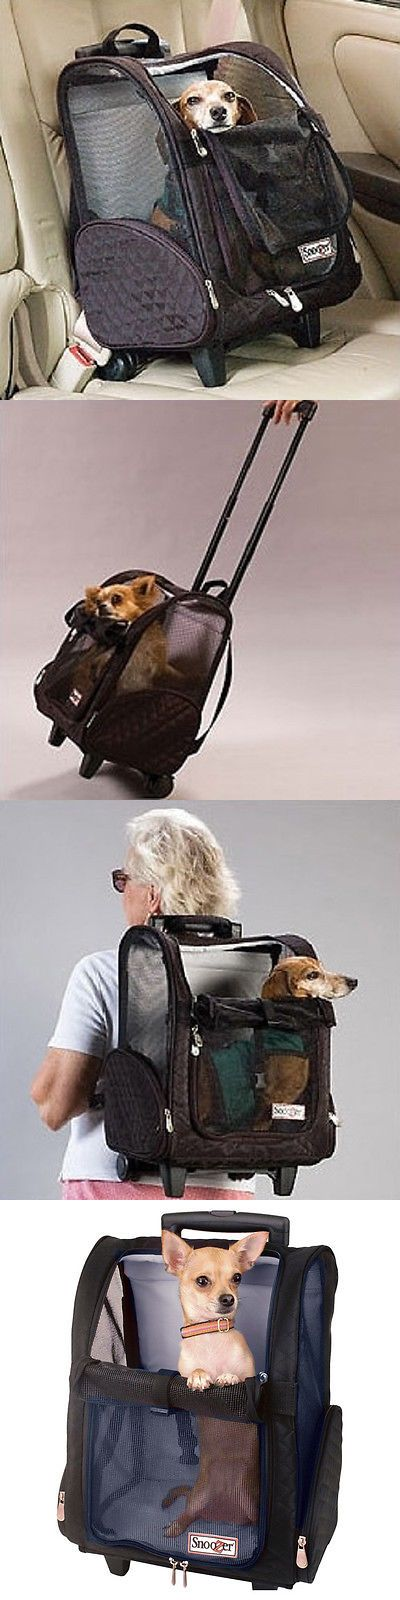 Carriers and Totes 177788: Airline Pet Carrier Under Seat Small Dog Cat Travel Bag Approved Backpack Car BUY IT NOW ONLY: $159.99